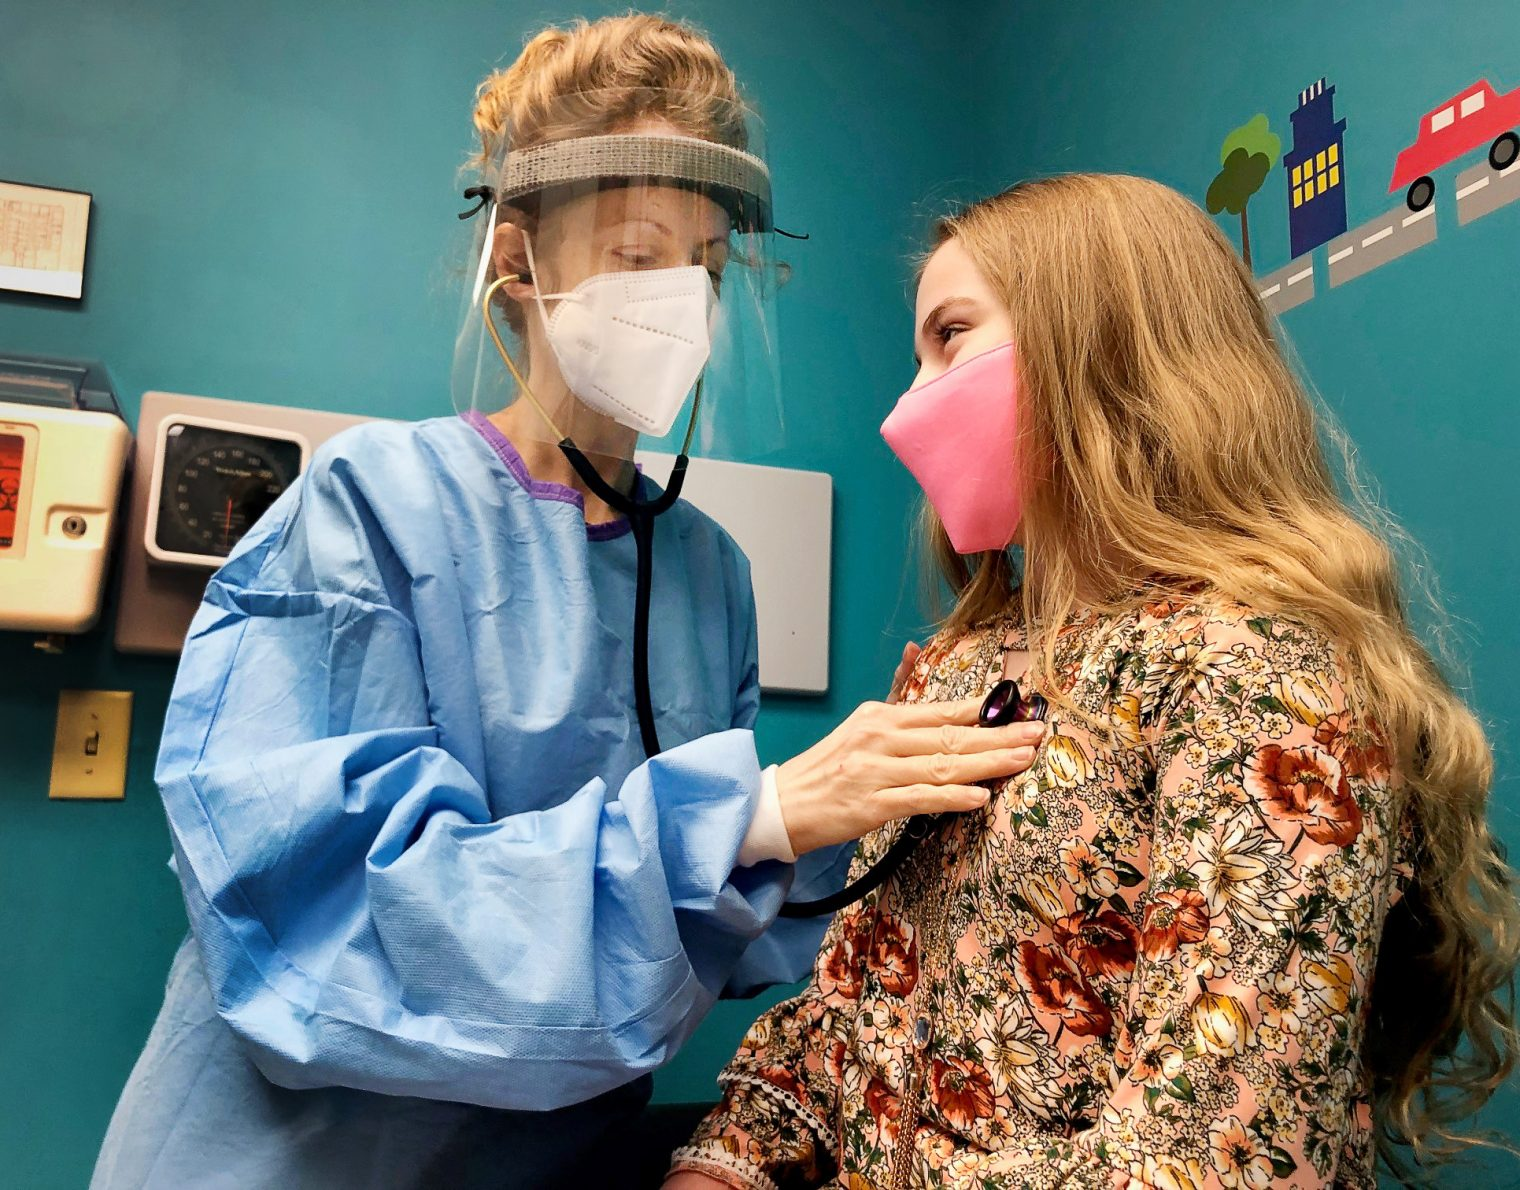 Mary Bailey, MD examines a patient with a stethoscope. She is wearing a face shield and the patient—a young girl—is wearing a mask.